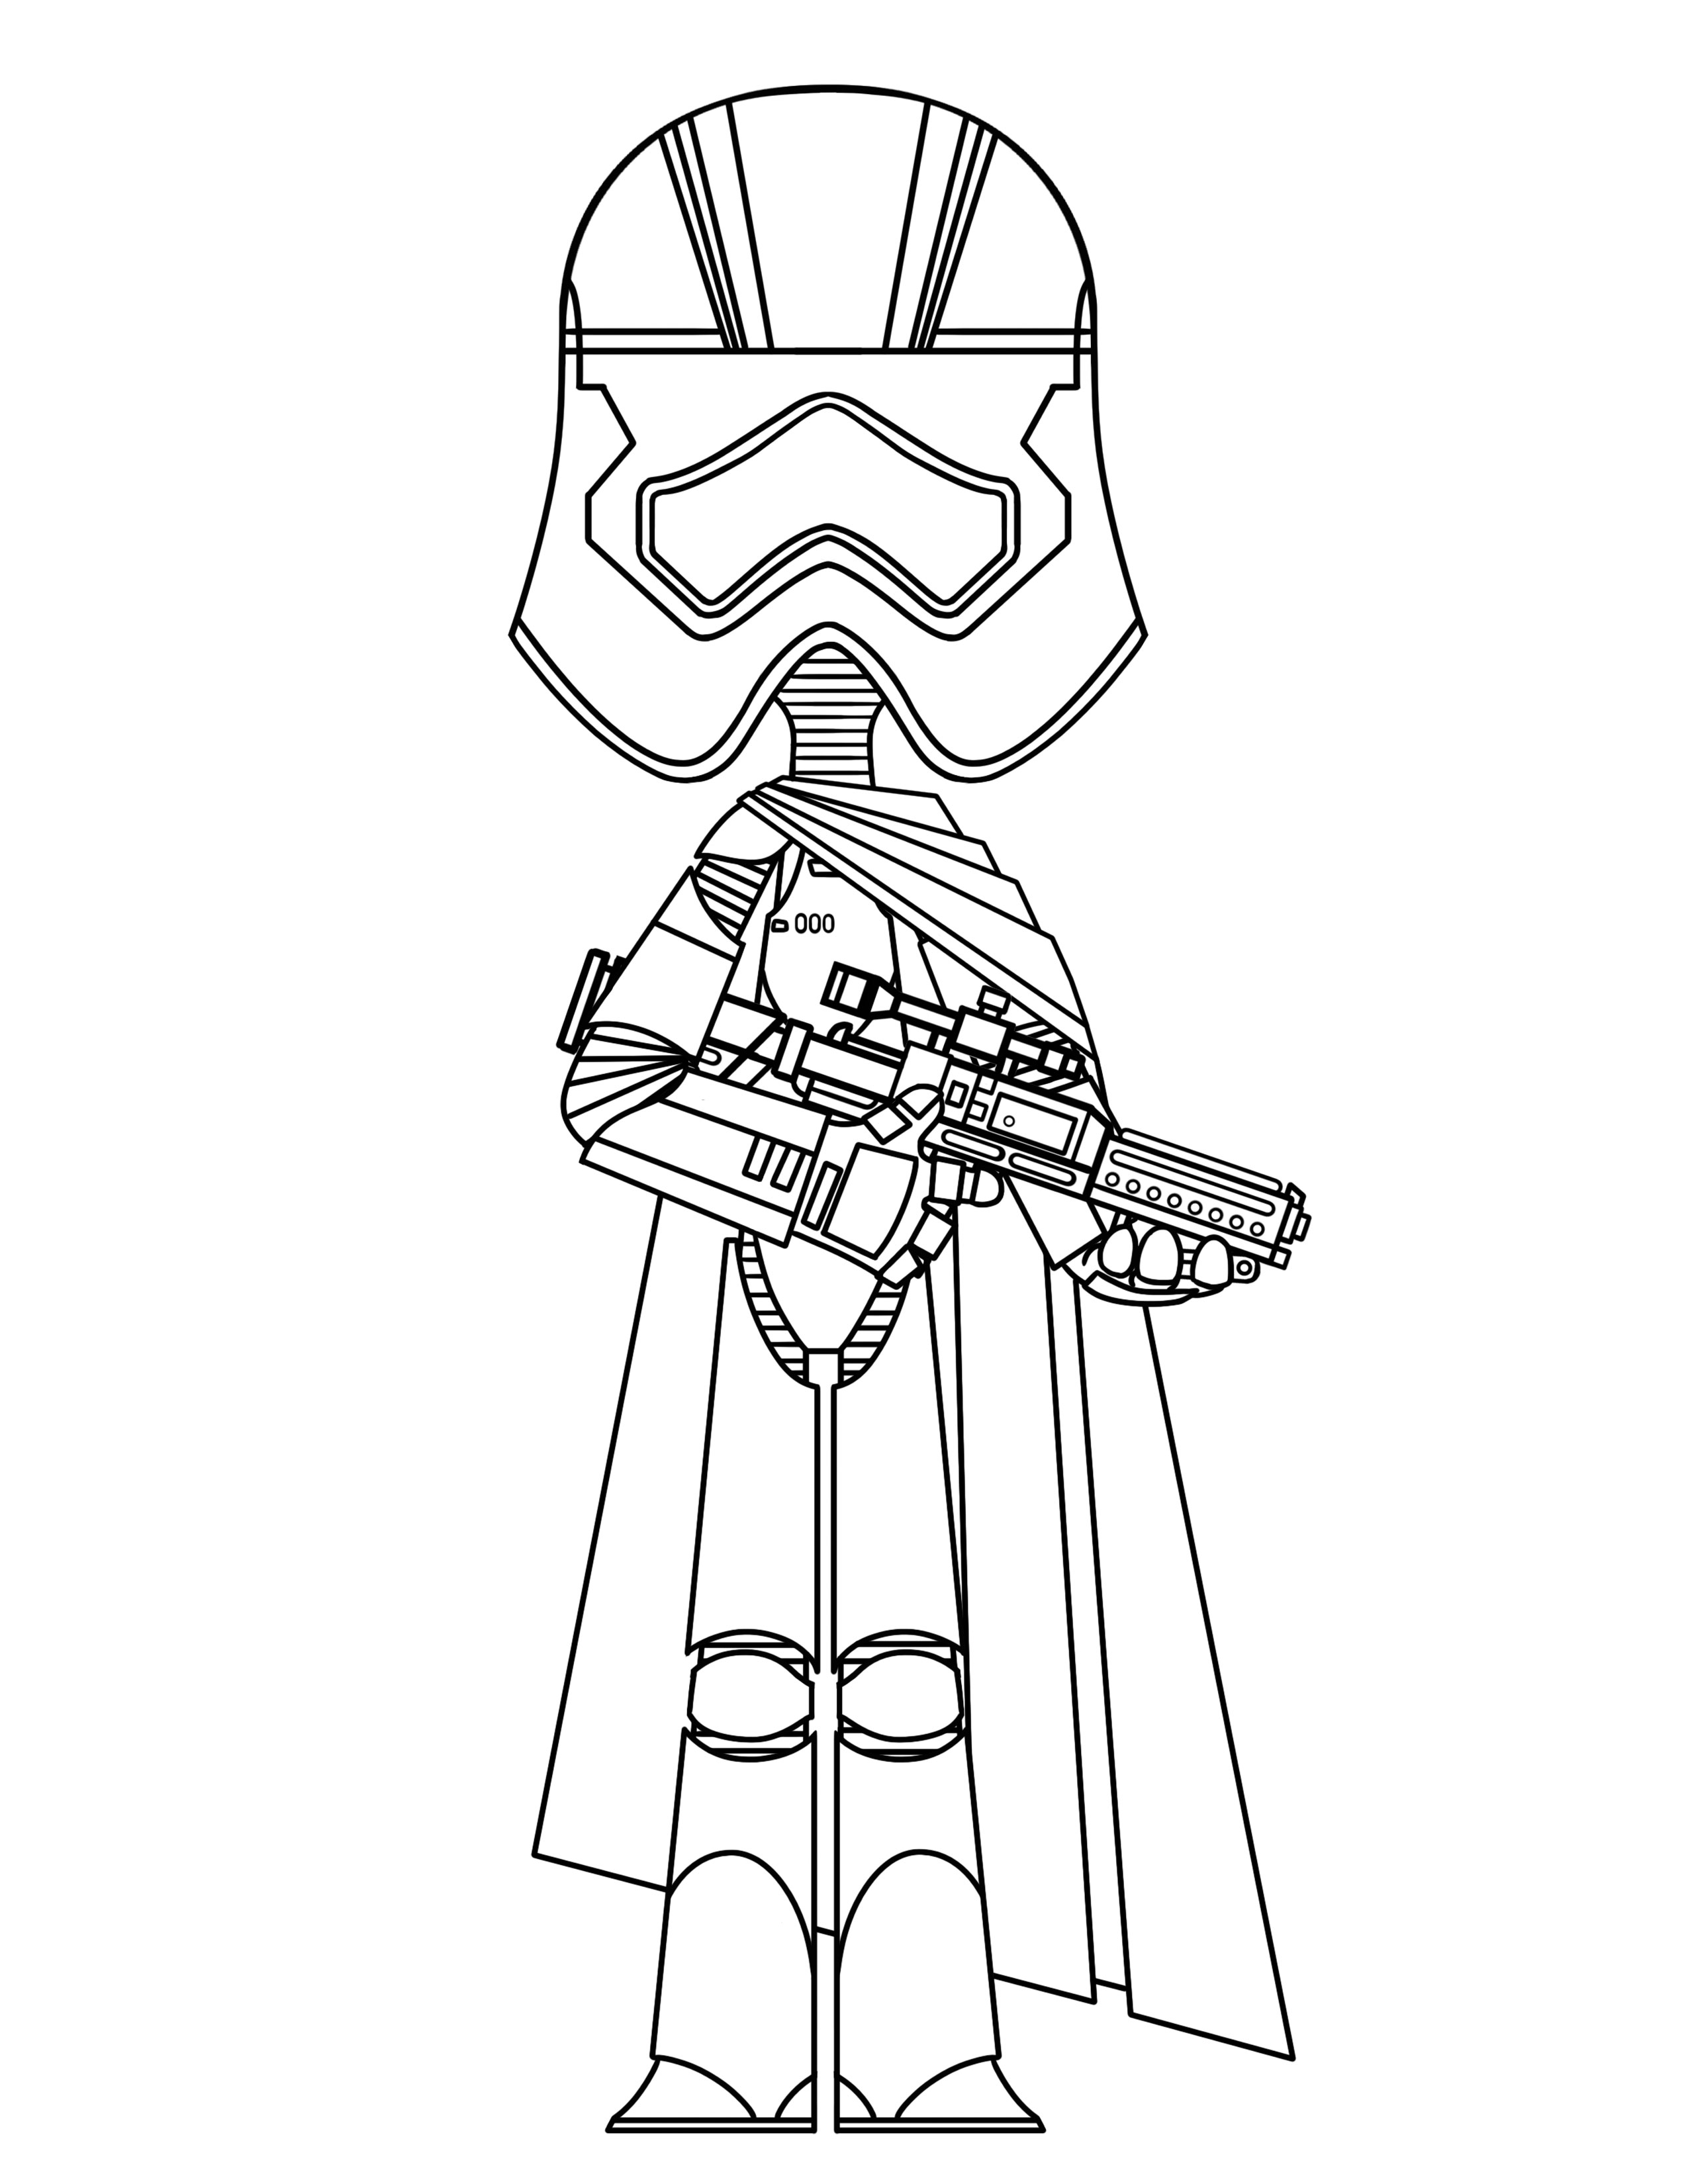 coloring pages star wars star wars coloring pages download and print star wars coloring star wars pages